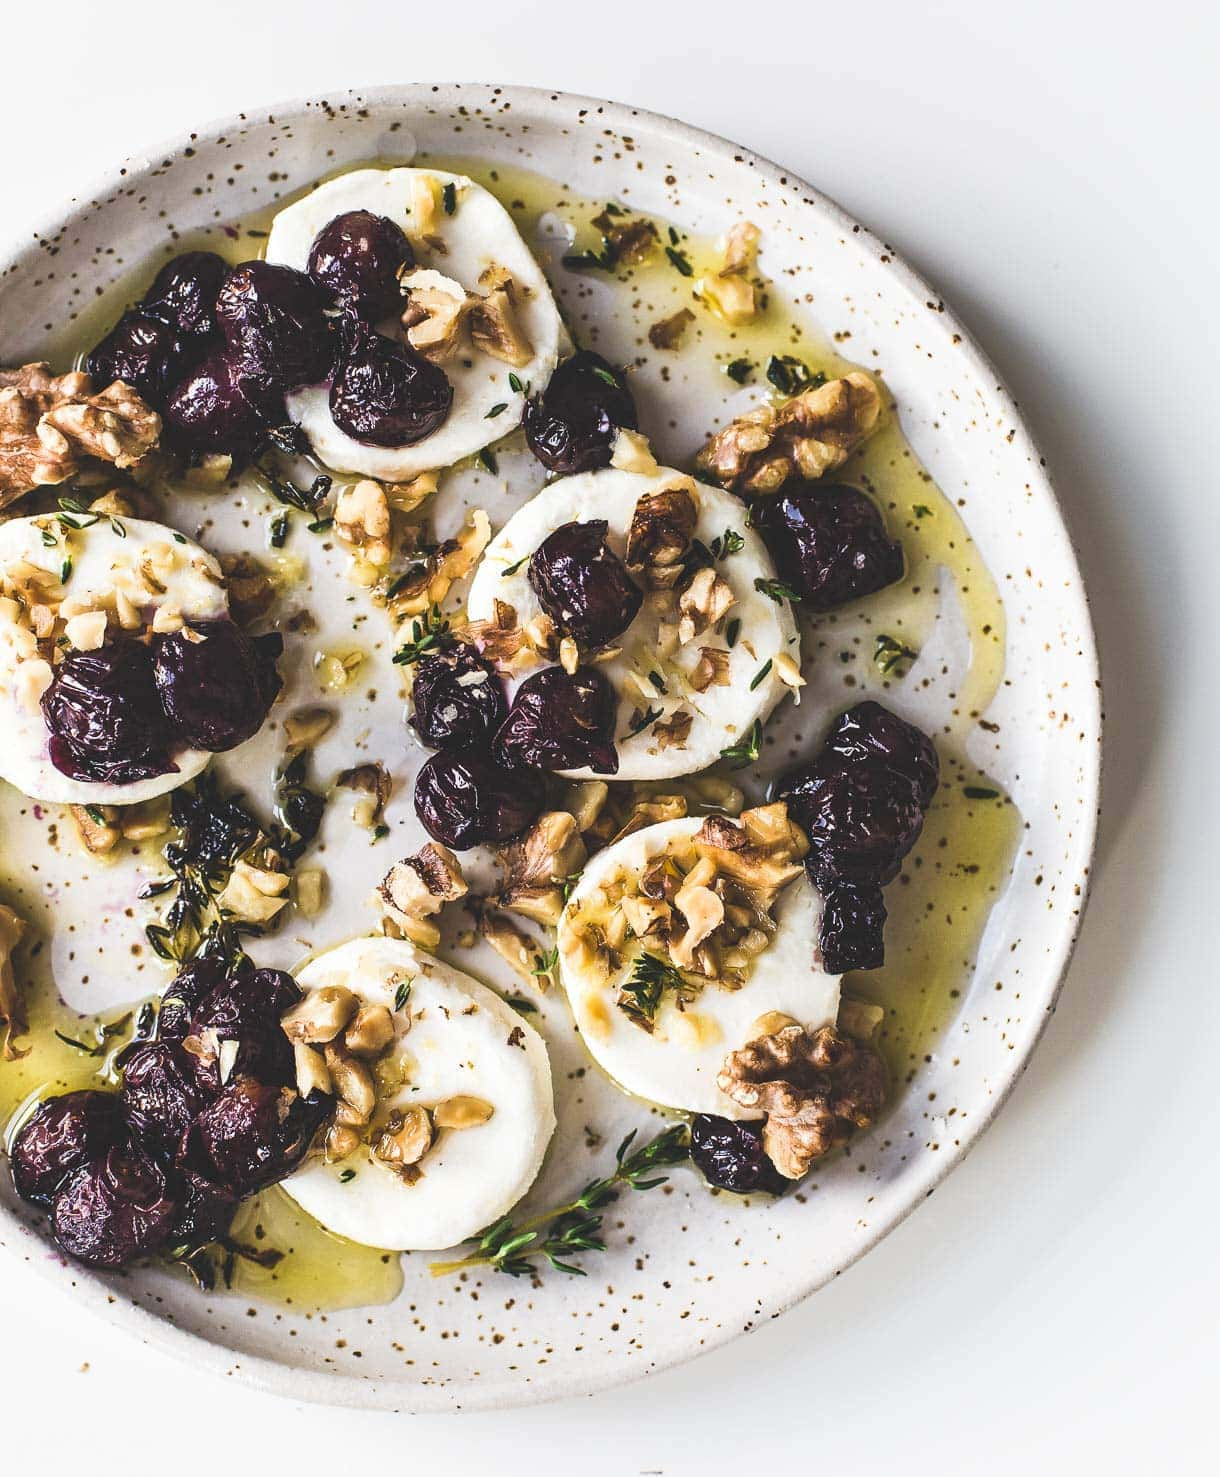 Marinated Goat Cheese with Roasted Grapes and Walnuts